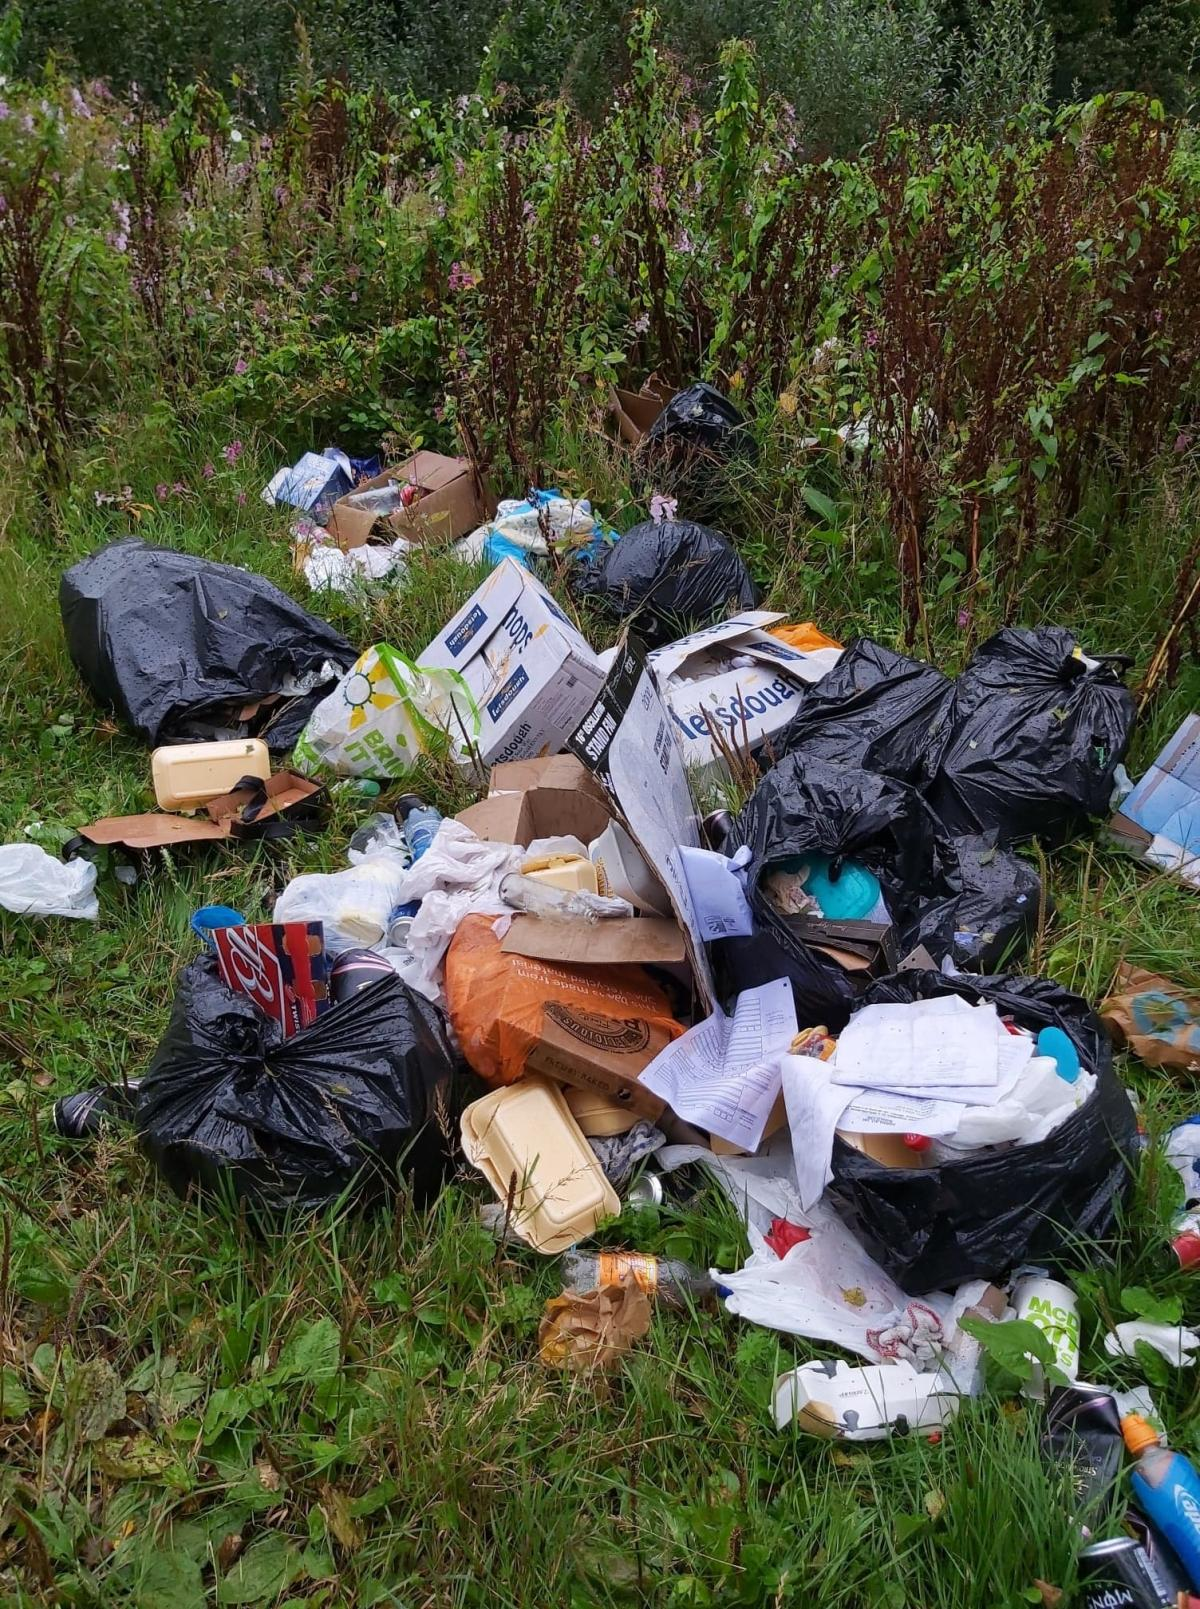 Rubbish dumped at Darwen beauty spot causes outrage